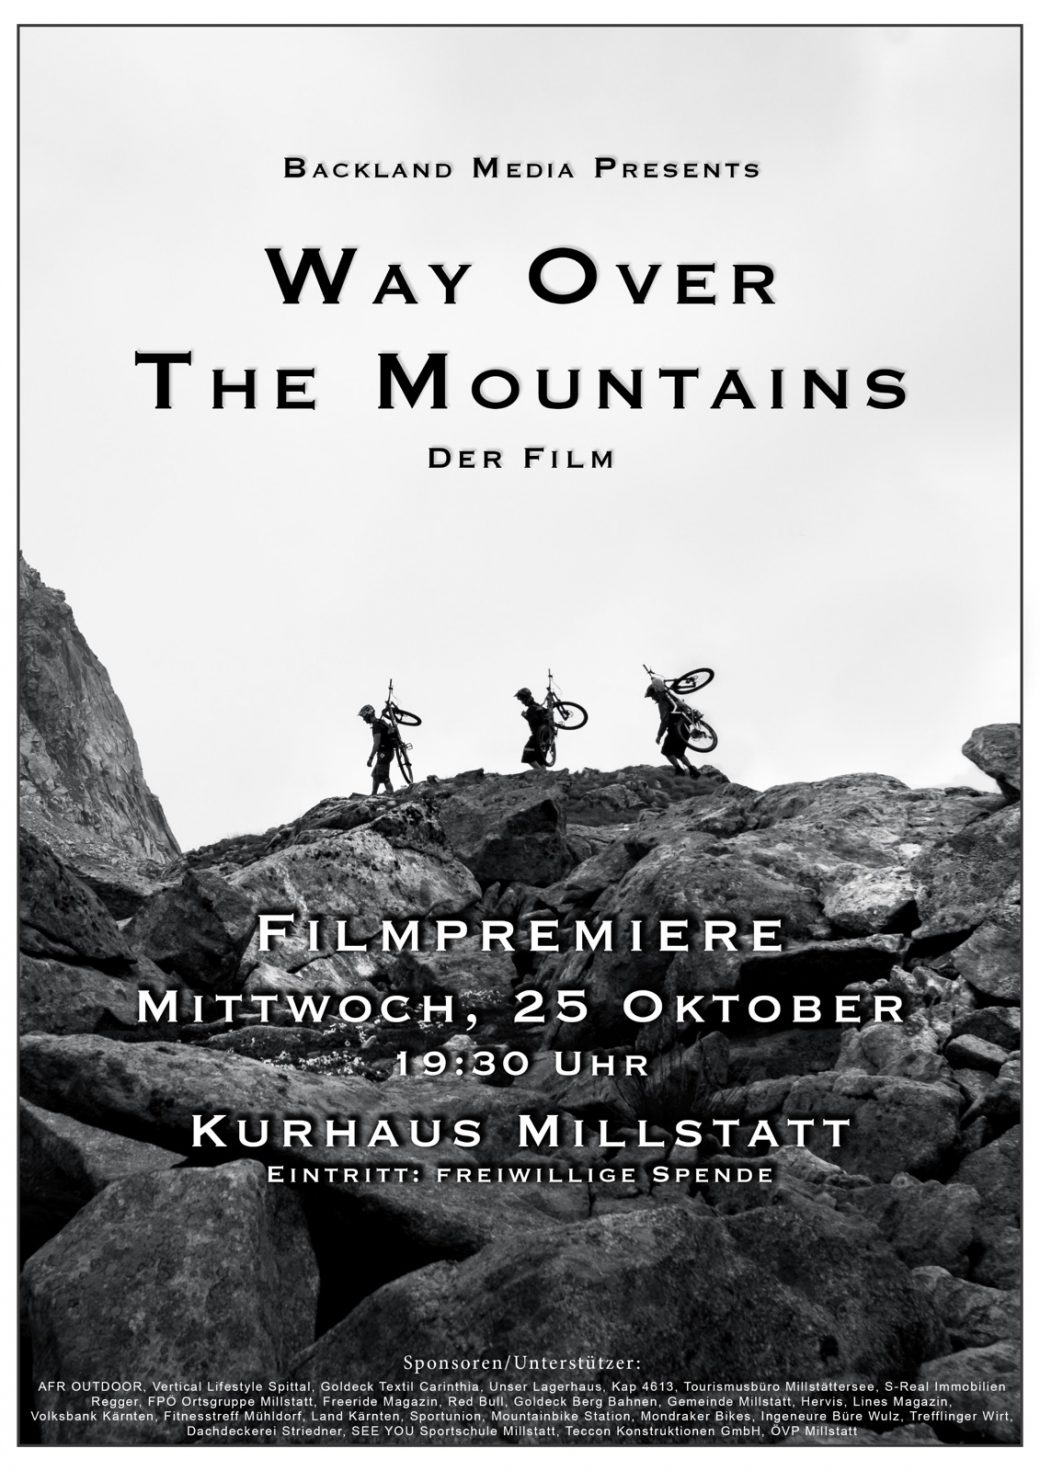 Way Over The Mountains Film Premiere Vertical Racing Kärnten Millstatt